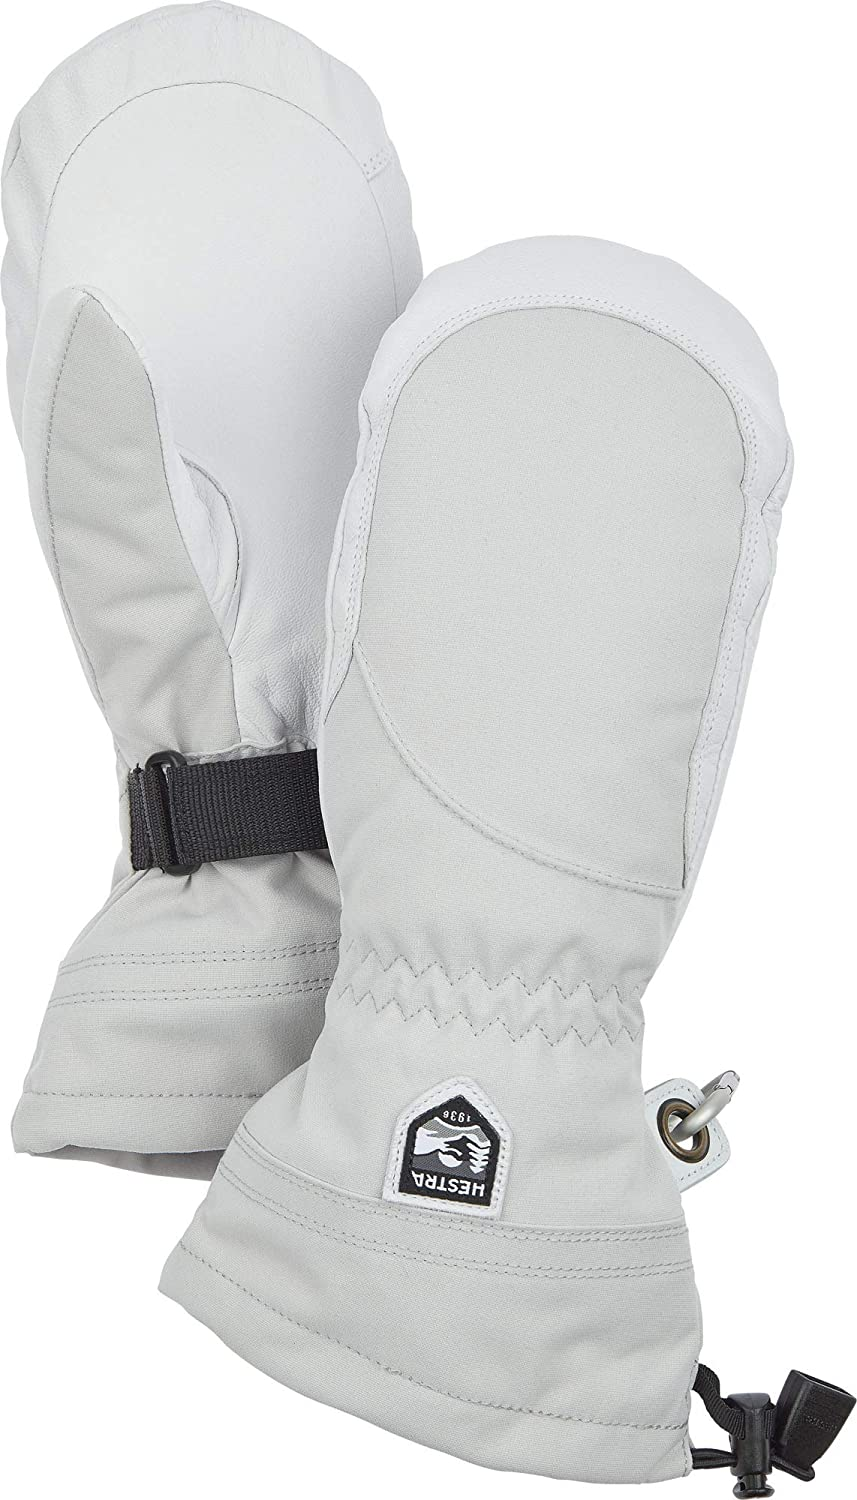 Hestra Heli Ski Womens Glove - Mitten Classic It Now on sale is very popular S Snow for Leather